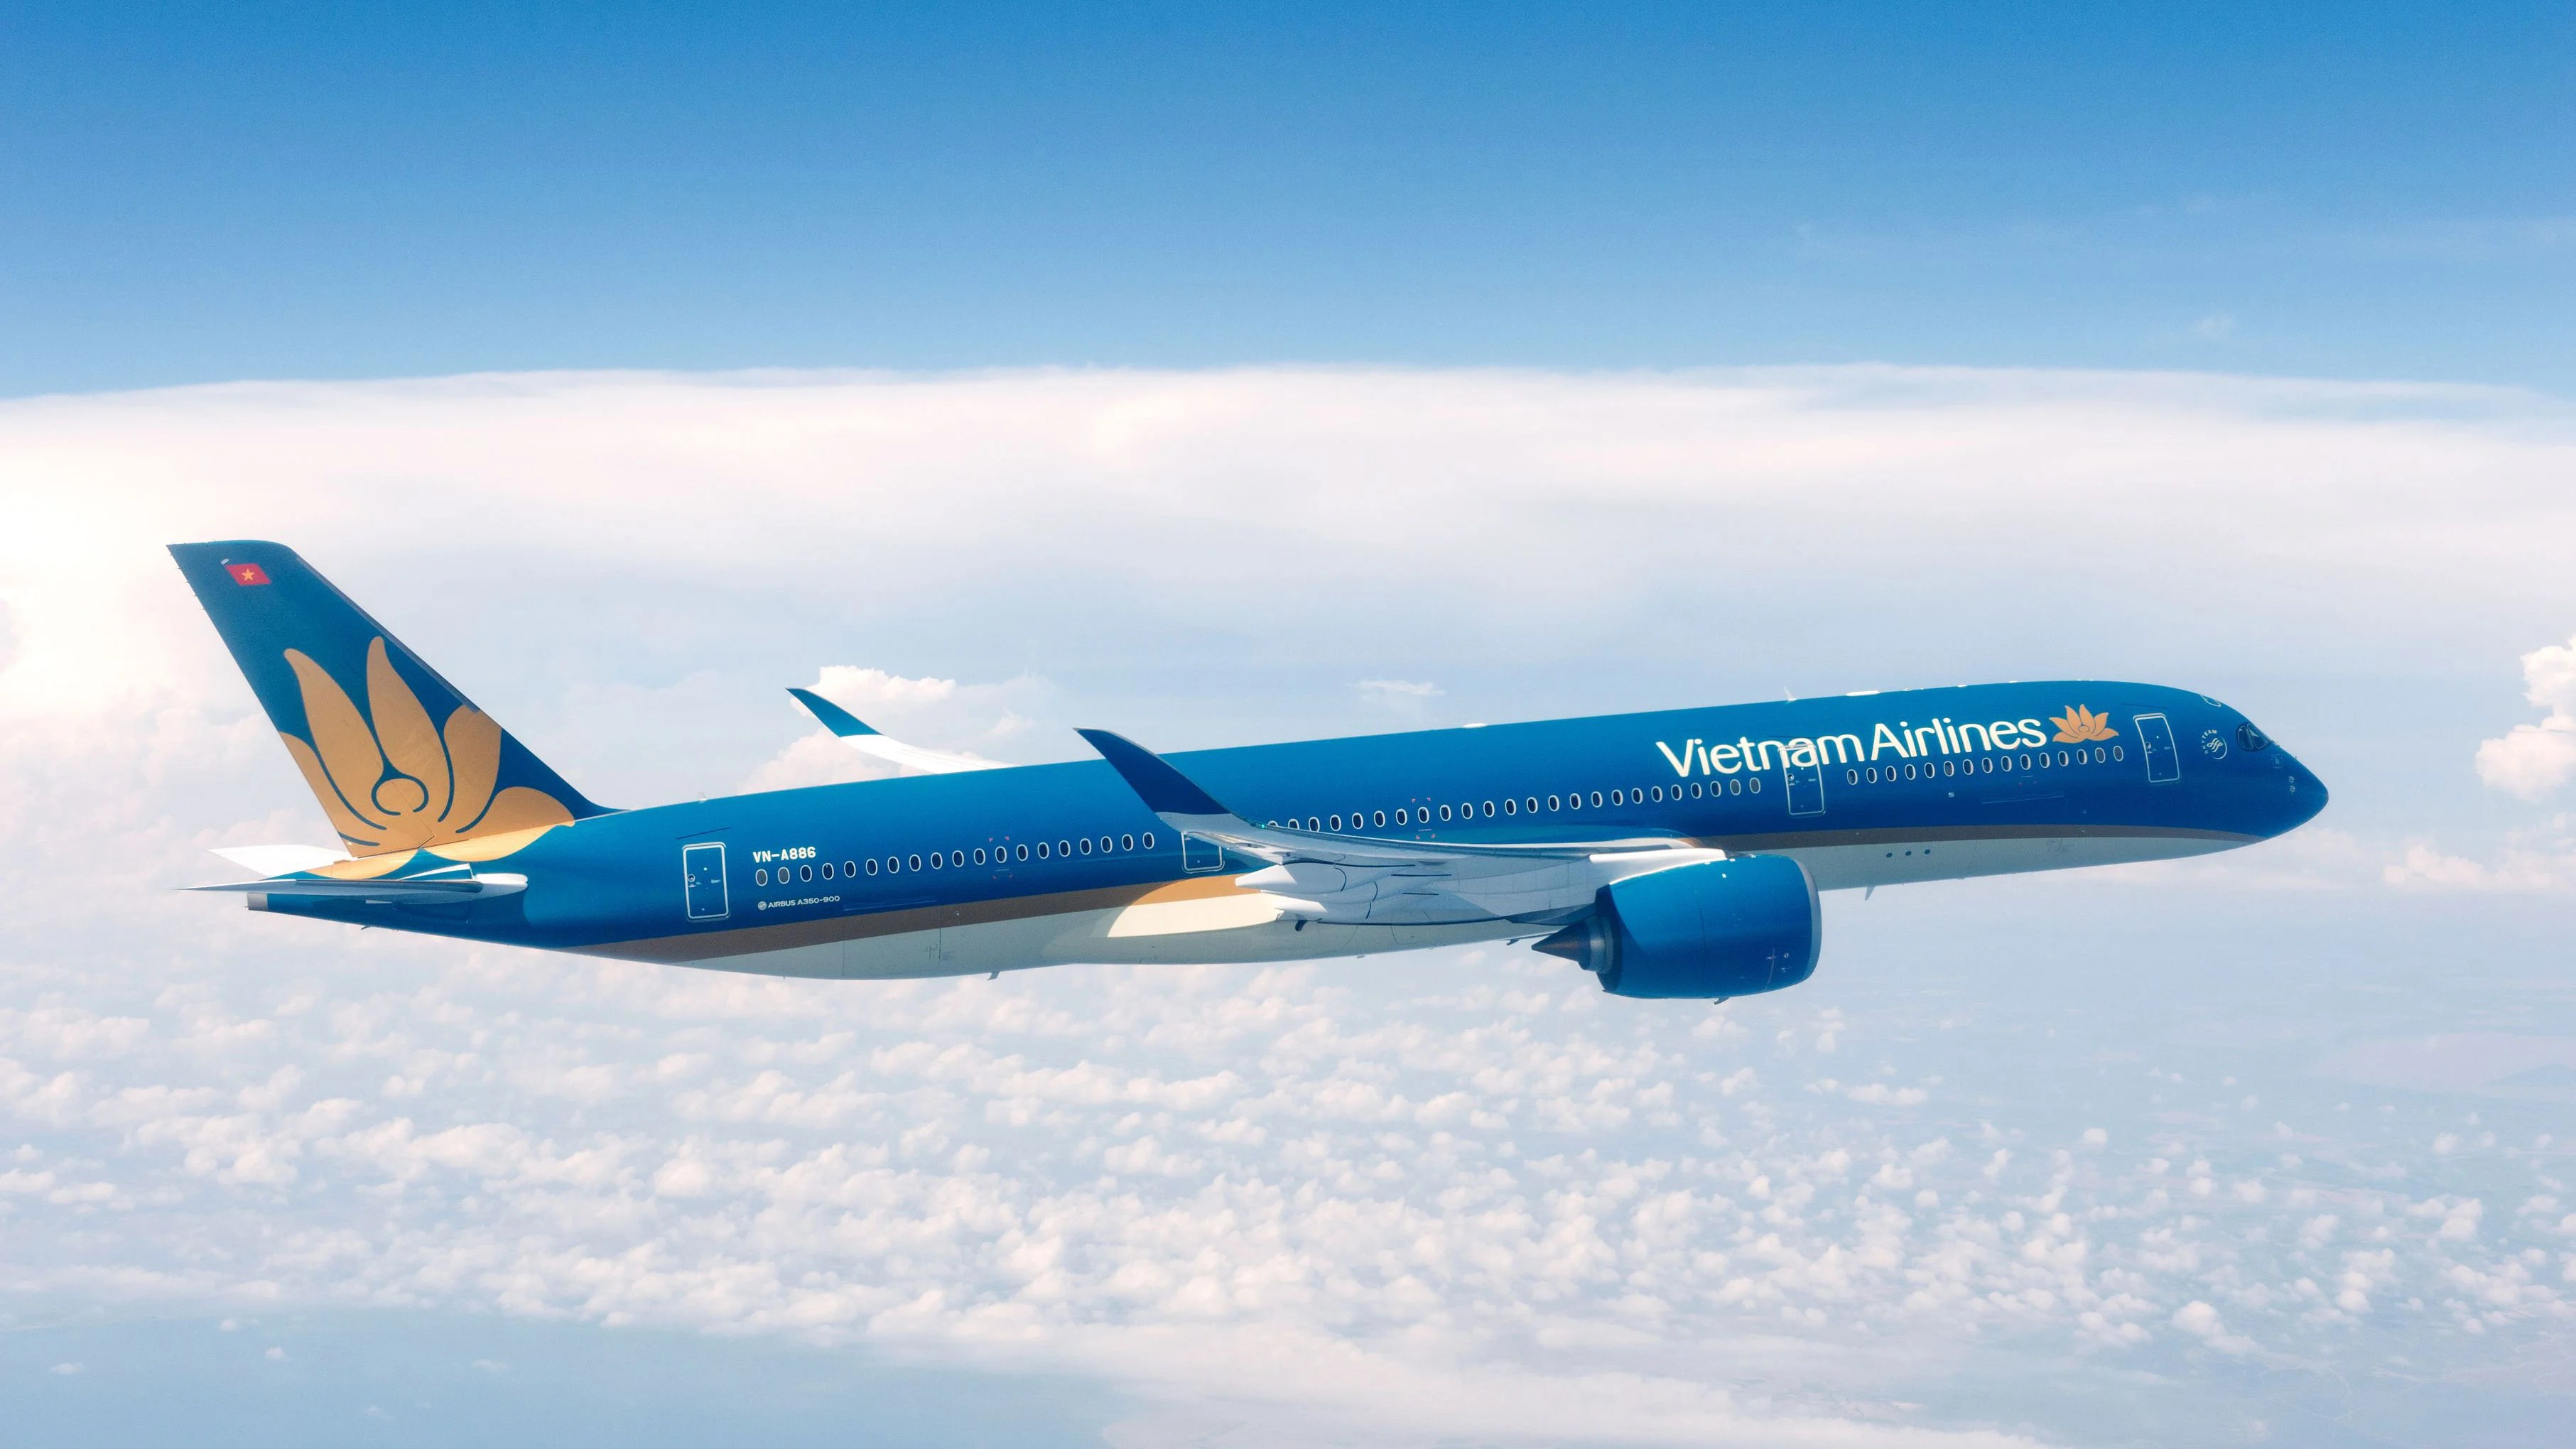 Vietnamese Airlines Can Now Fly Direct To The Us